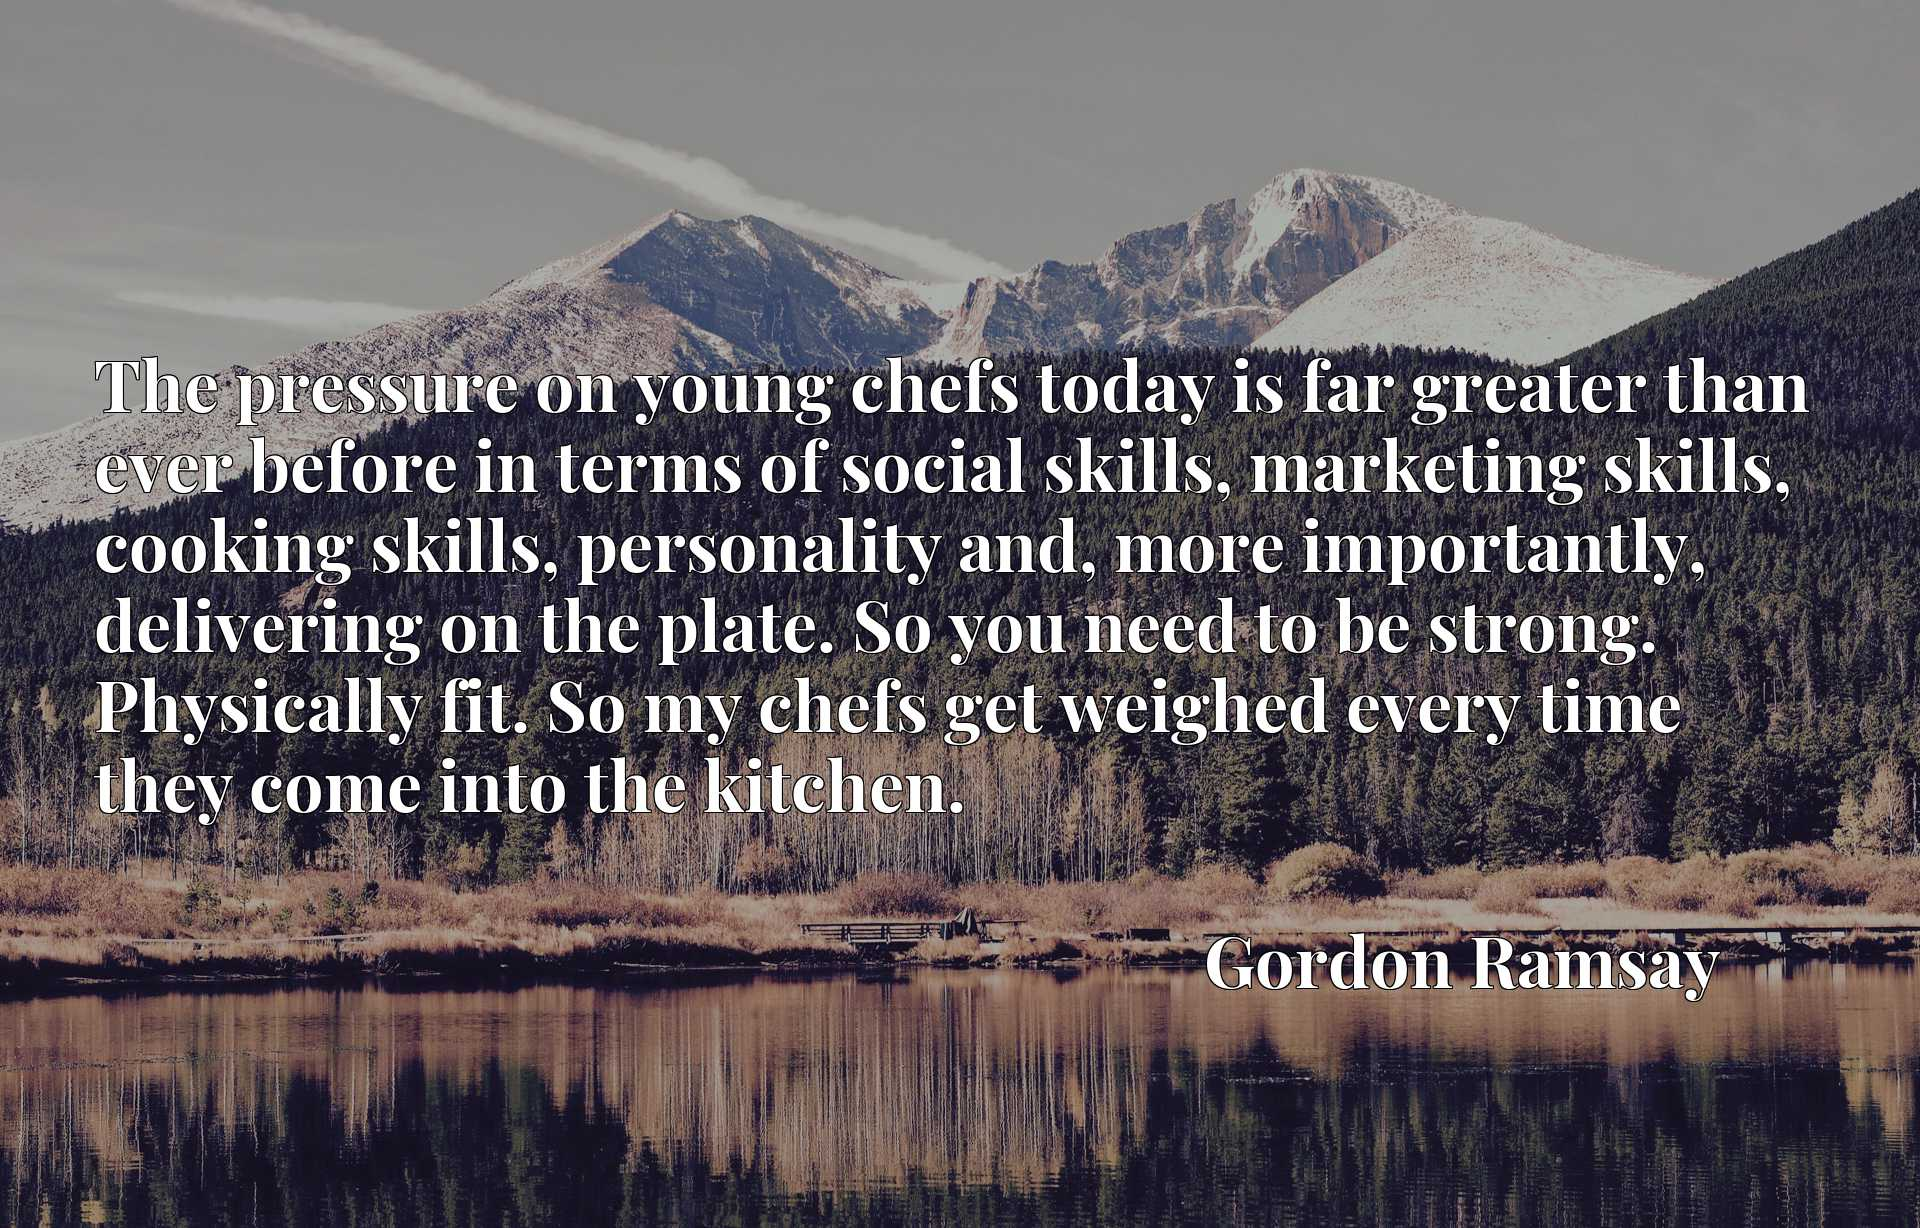 The pressure on young chefs today is far greater than ever before in terms of social skills, marketing skills, cooking skills, personality and, more importantly, delivering on the plate. So you need to be strong. Physically fit. So my chefs get weighed every time they come into the kitchen.